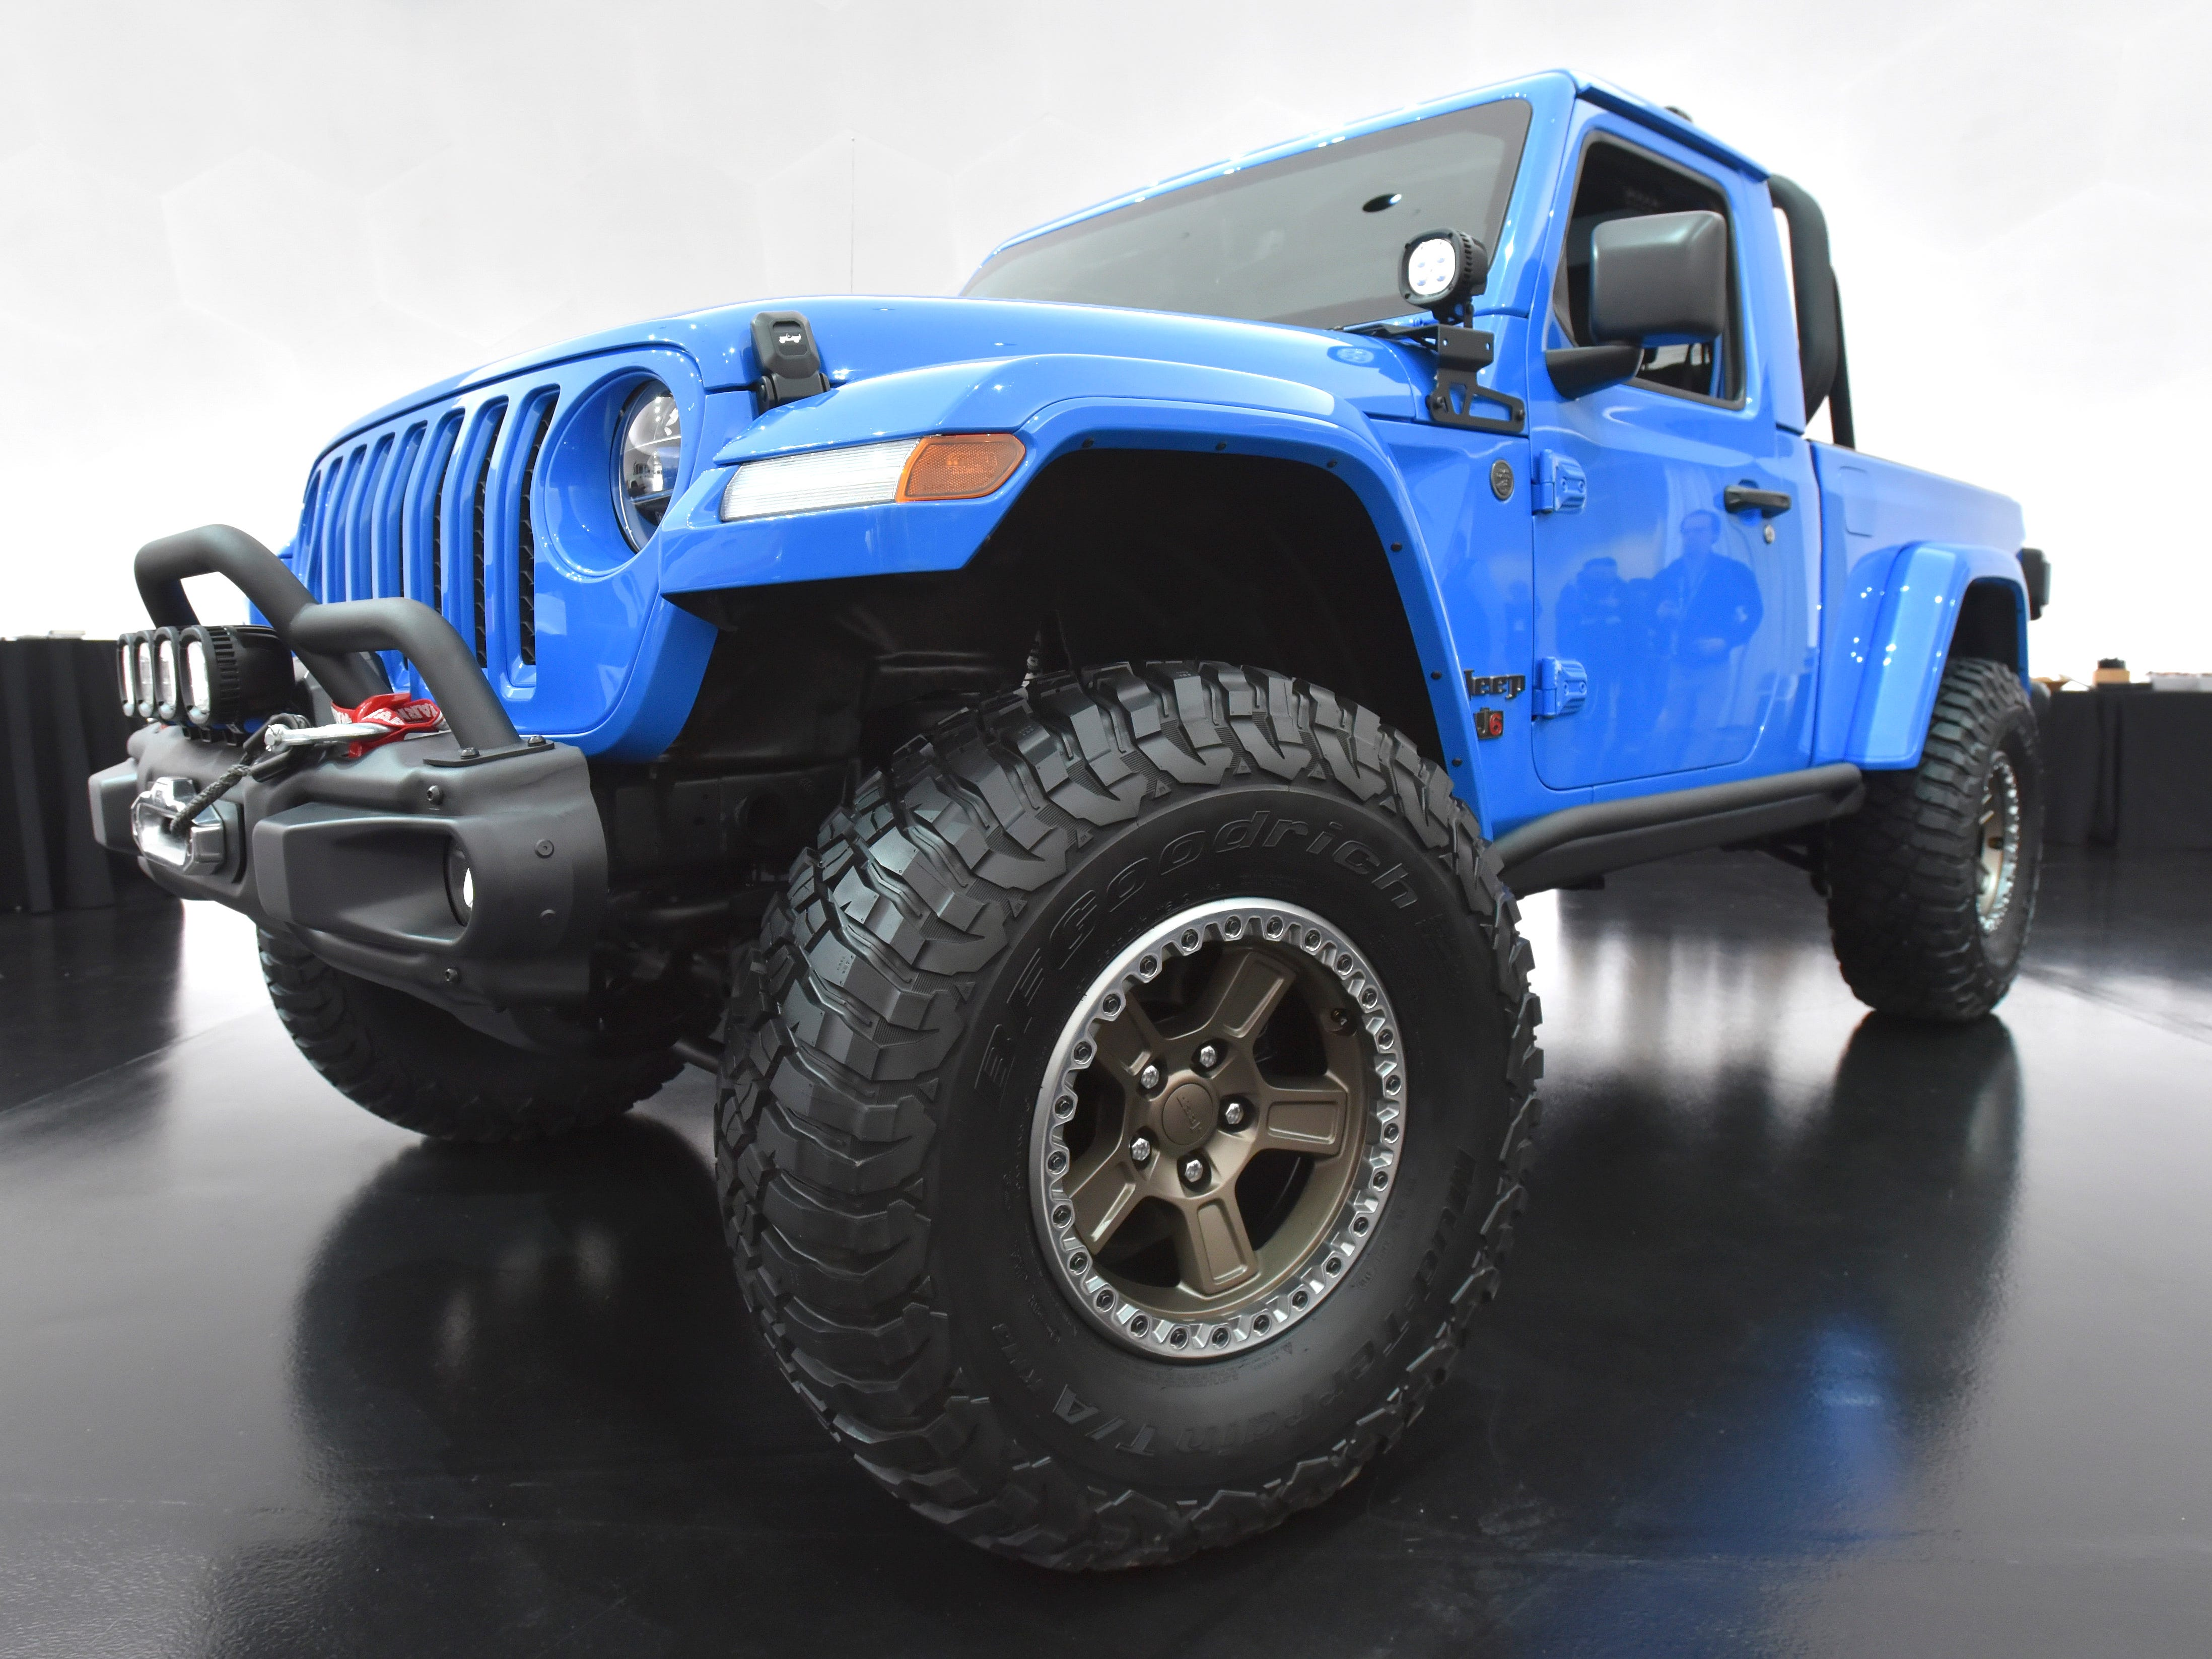 This is the Jeep J6 concept in Metallic Brilliant Blue.